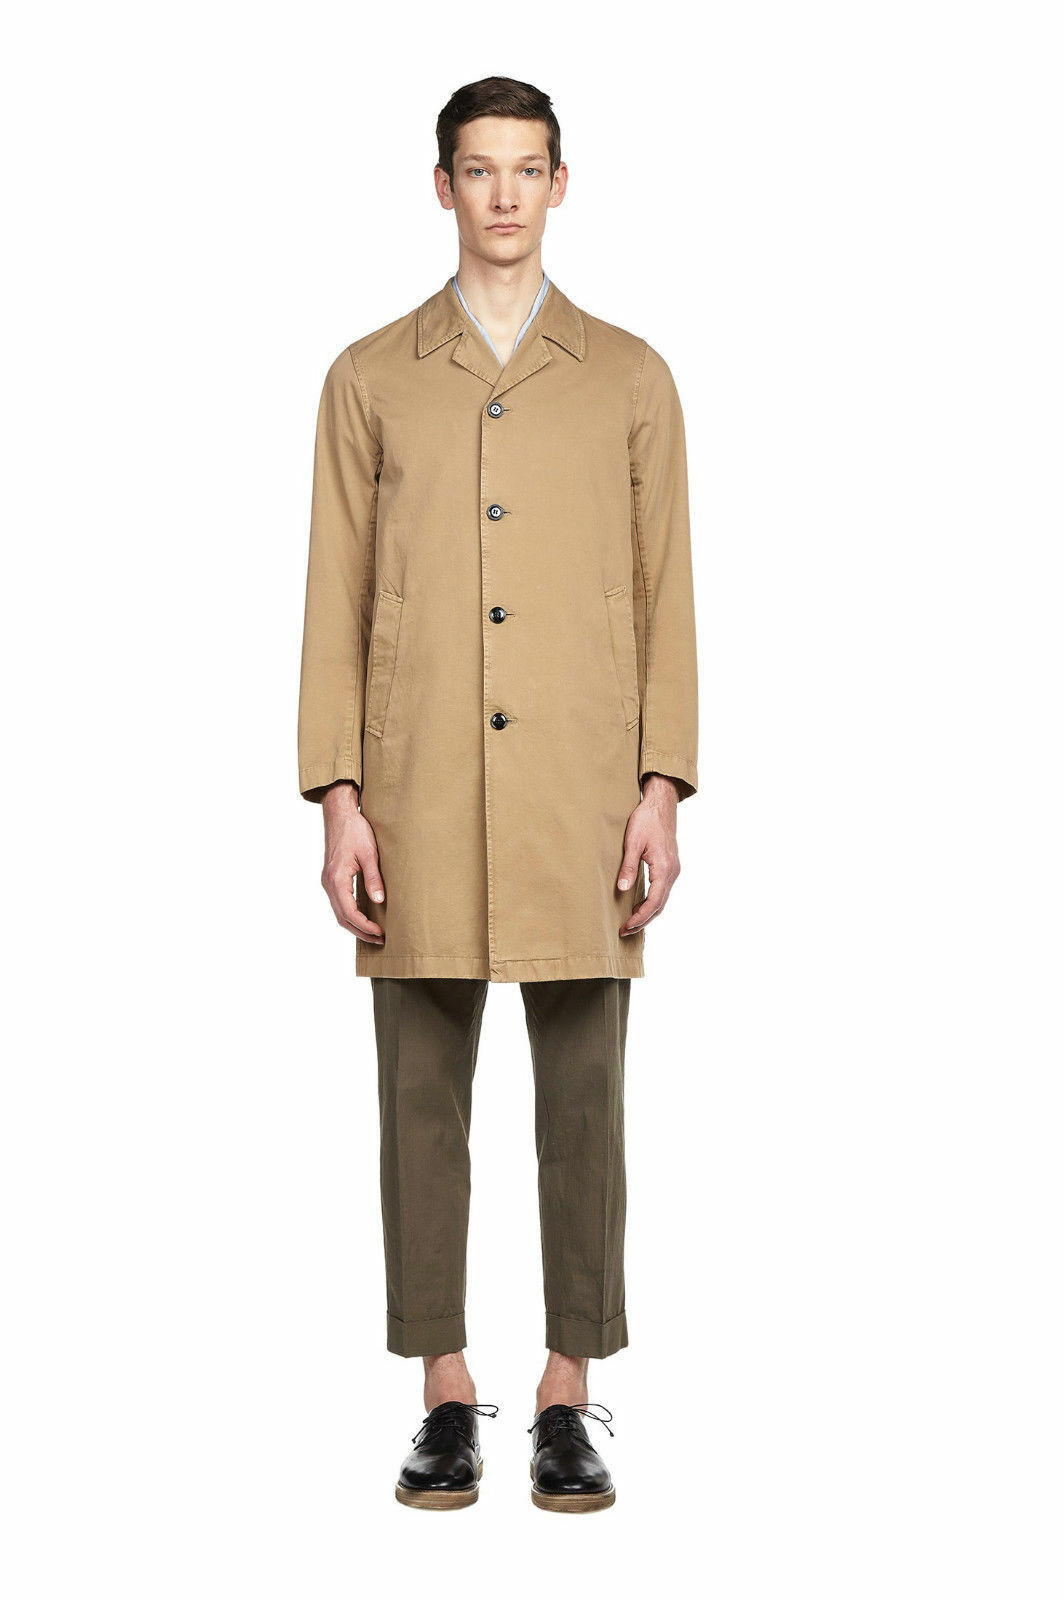 Dries Van Noten Rotan Bis Coat in Sand, Größe Large/50 - Brand New,